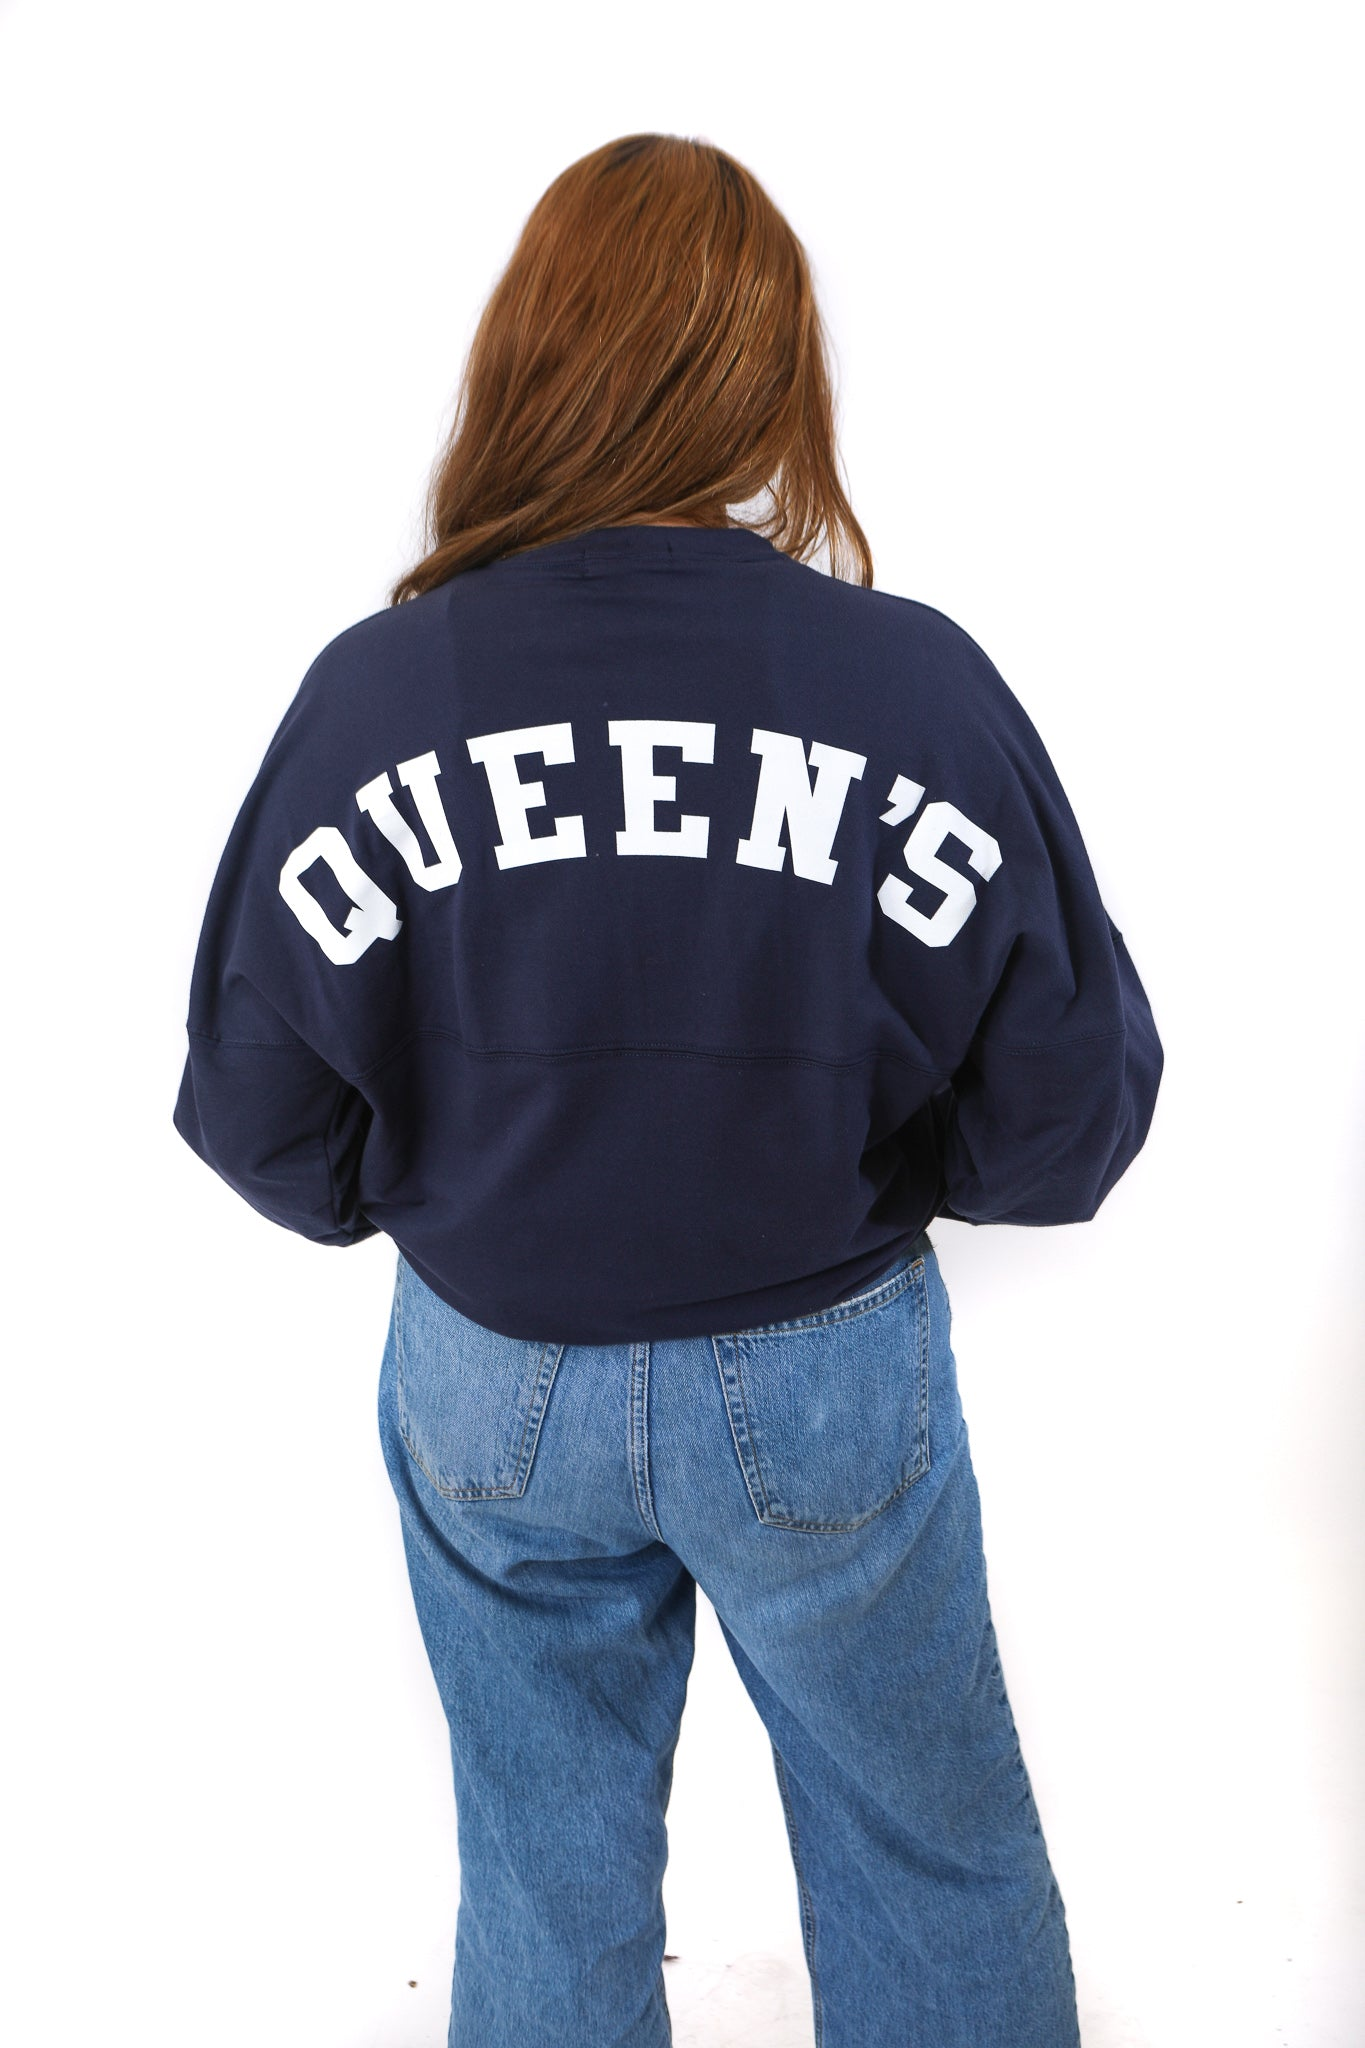 Back of blue shirt with Queen's written across in white